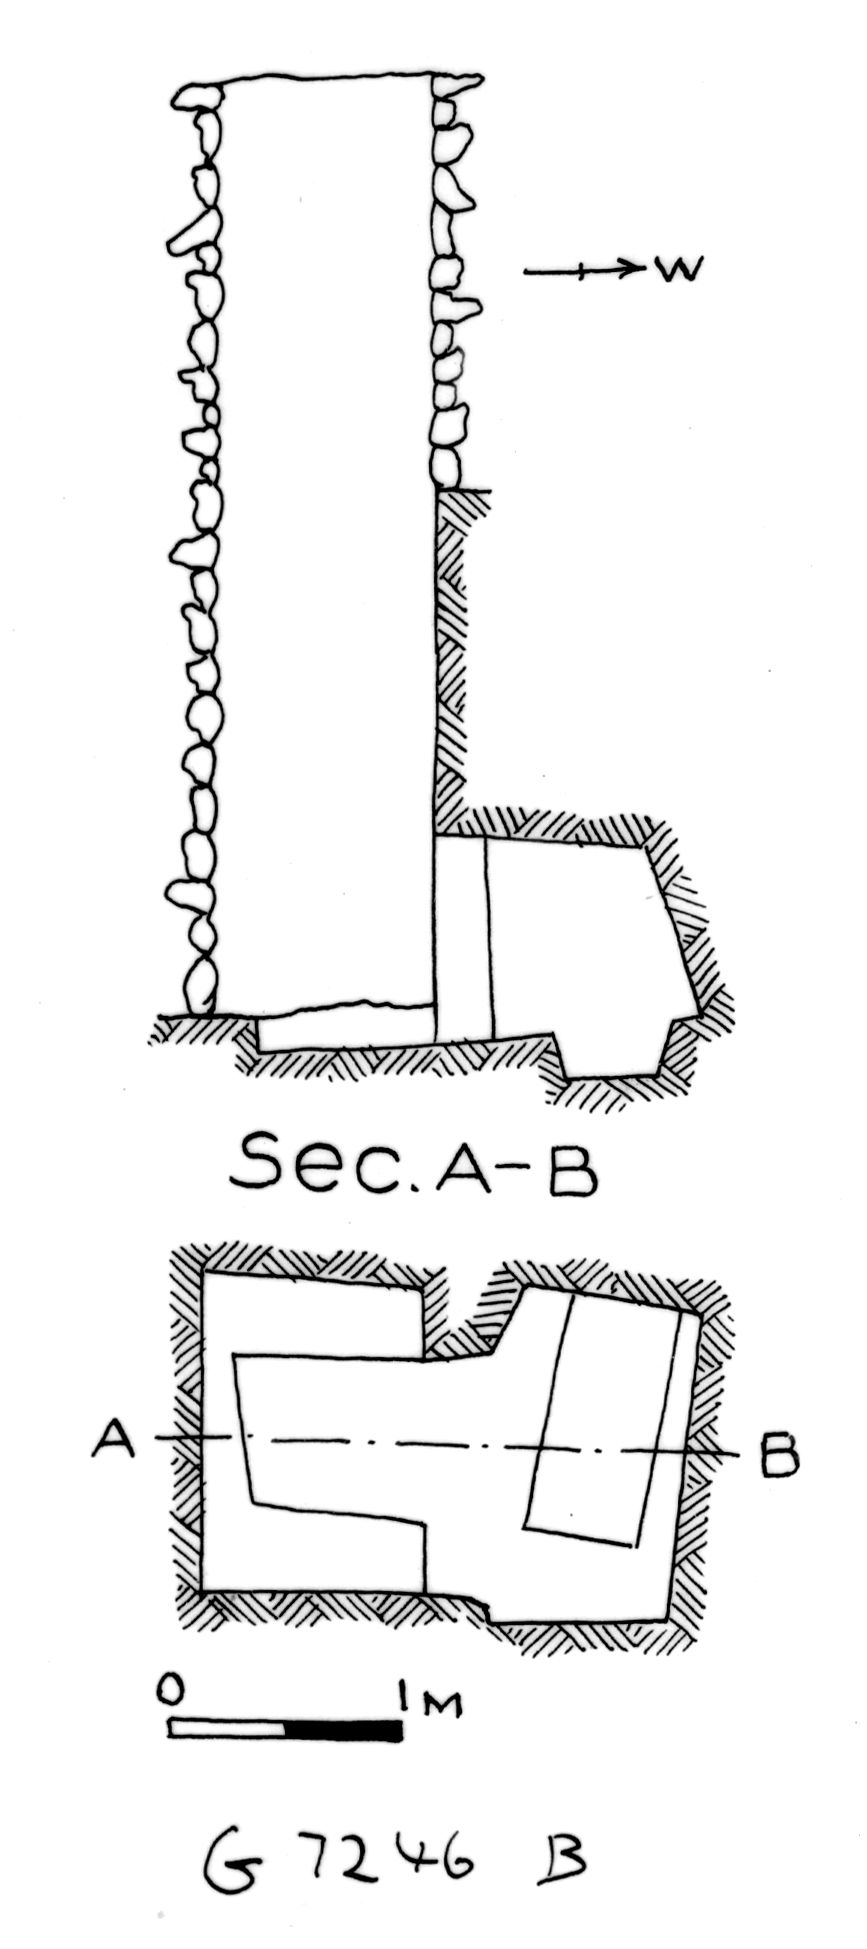 Maps and plans: G 7244+7246: G 7246, Shaft B